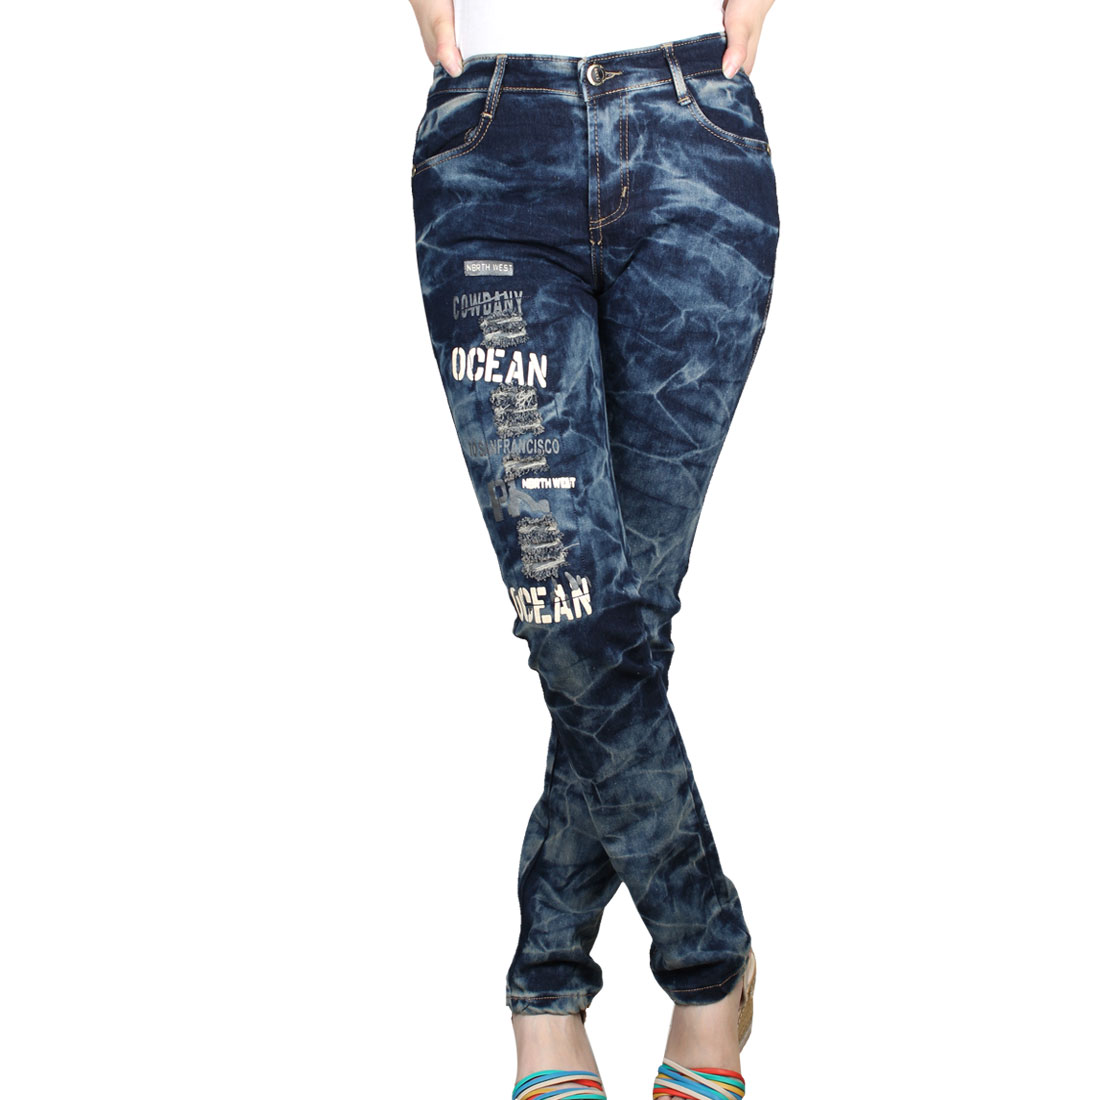 Women Belt Loop Letters Print Distressed Faded Jeans Pants Blue Gray S